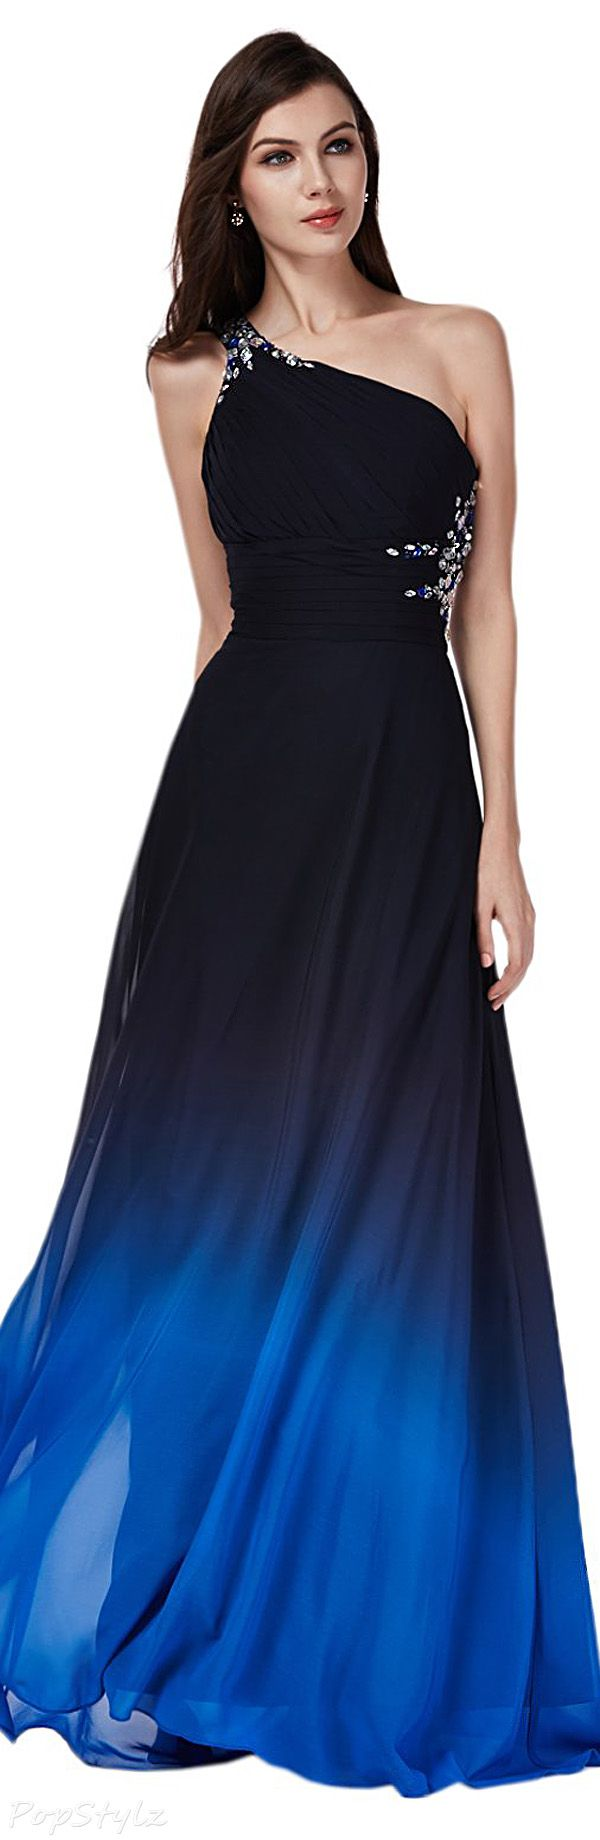 Sunvary 2016 Gradient Custom Colors Long Formal Dress